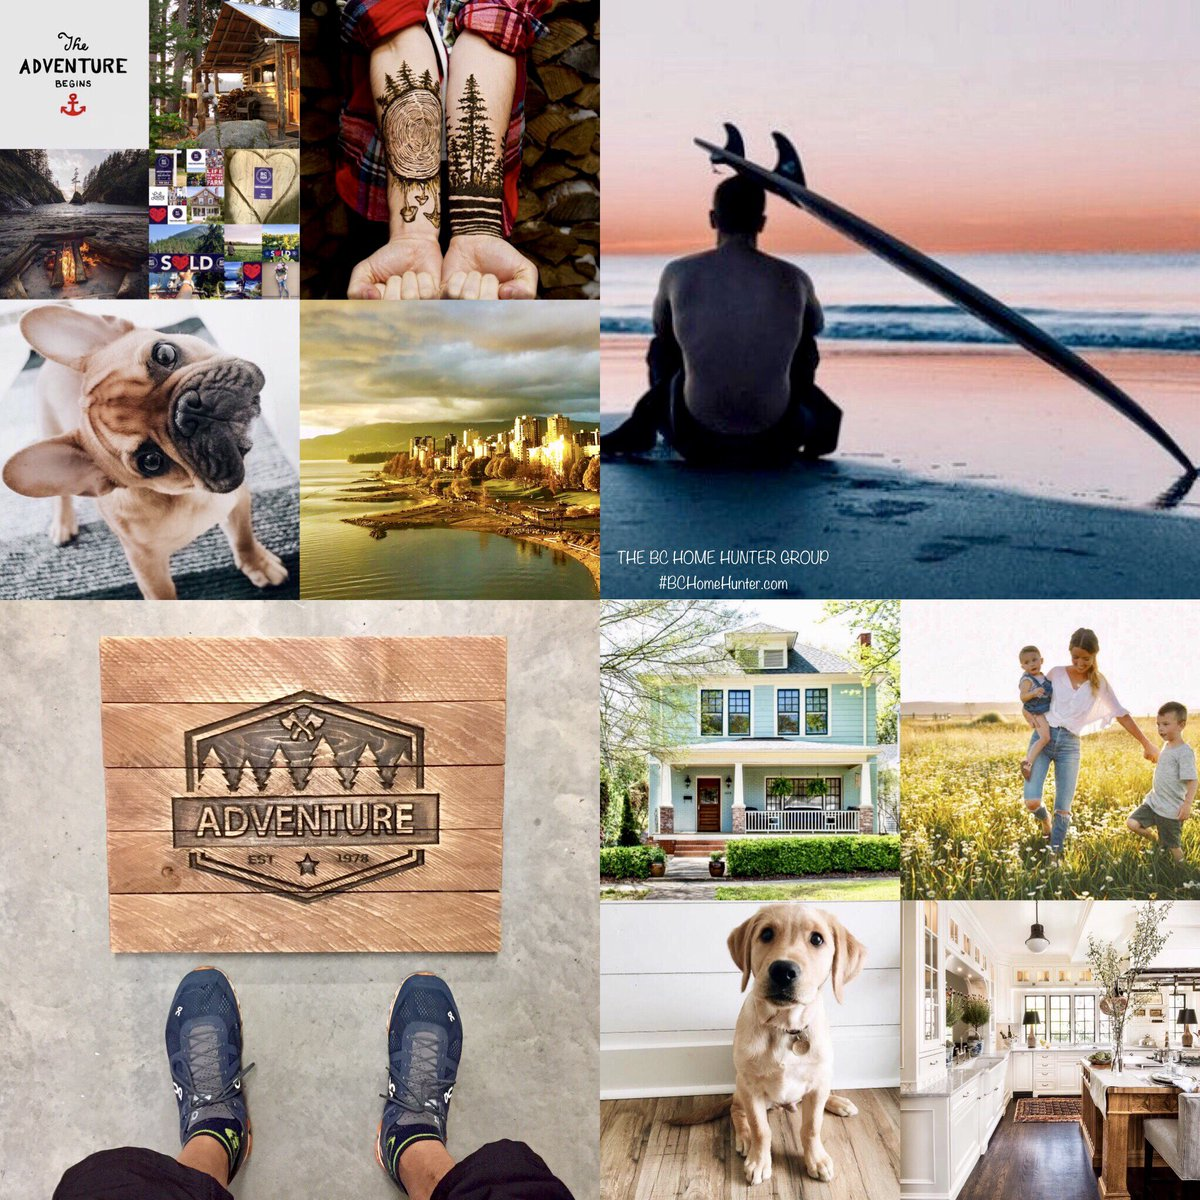 THE #BC HOME HUNTER GROUP Big thank you to Jen & Logan for your thoughtful #QualicumBeach, #VancouverIsland seaside home referral, see you two soon! #Vancouver #YVR #WestVan #NorthVan #Squamish #Whistler #WhiteRock #FraserValley #BCHomeHunter #Alberta #WeLoveBC #WeSellBC #Canada